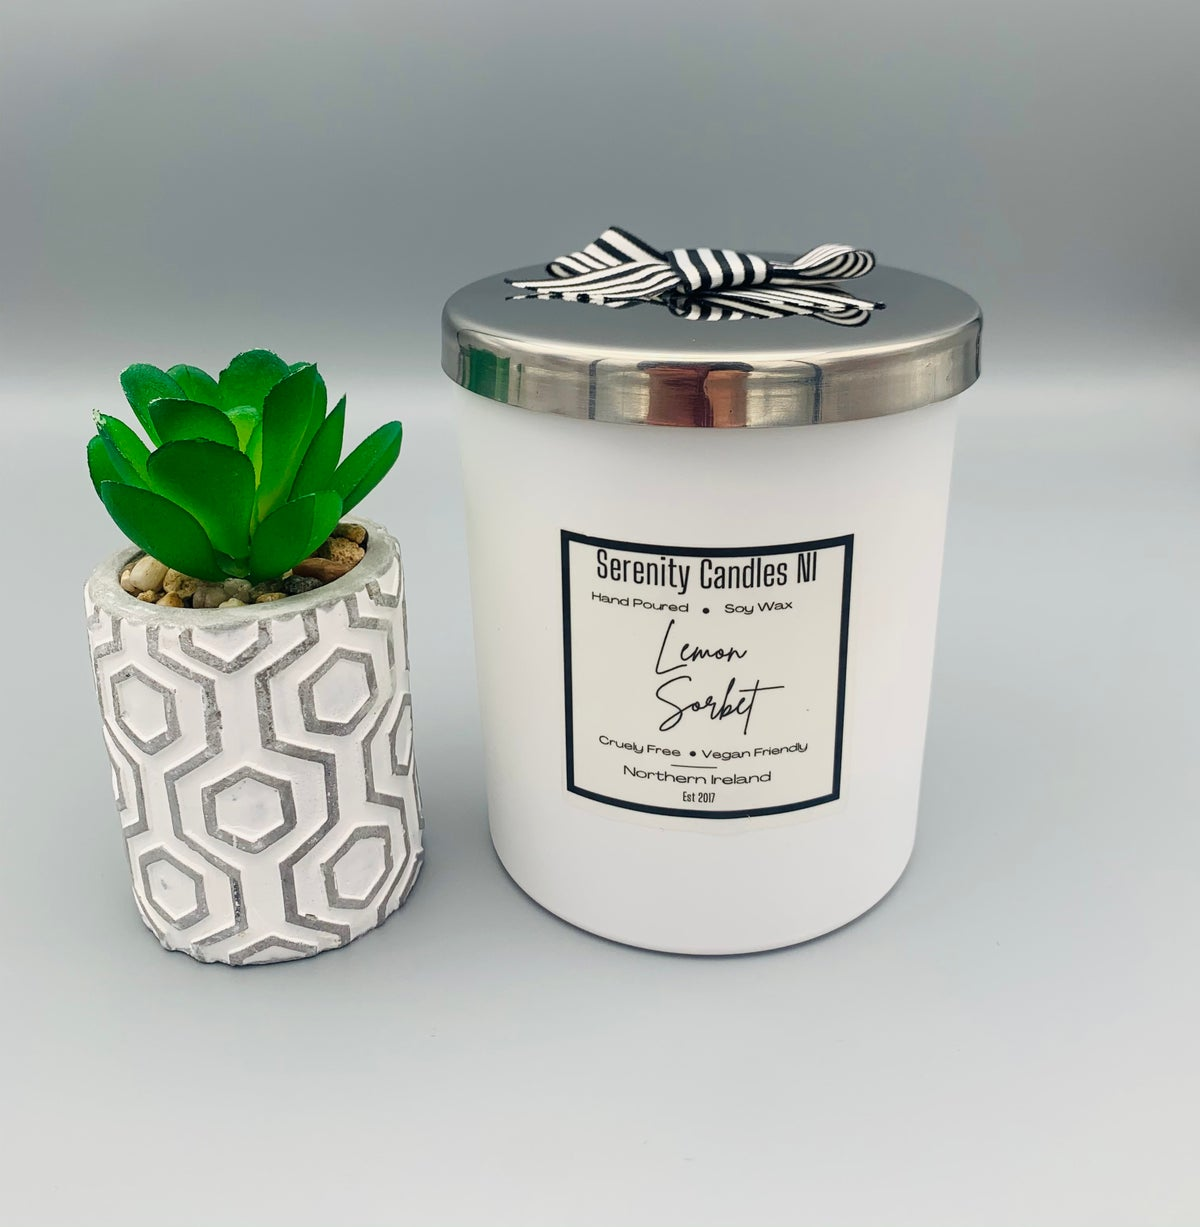 Cheshire Candle